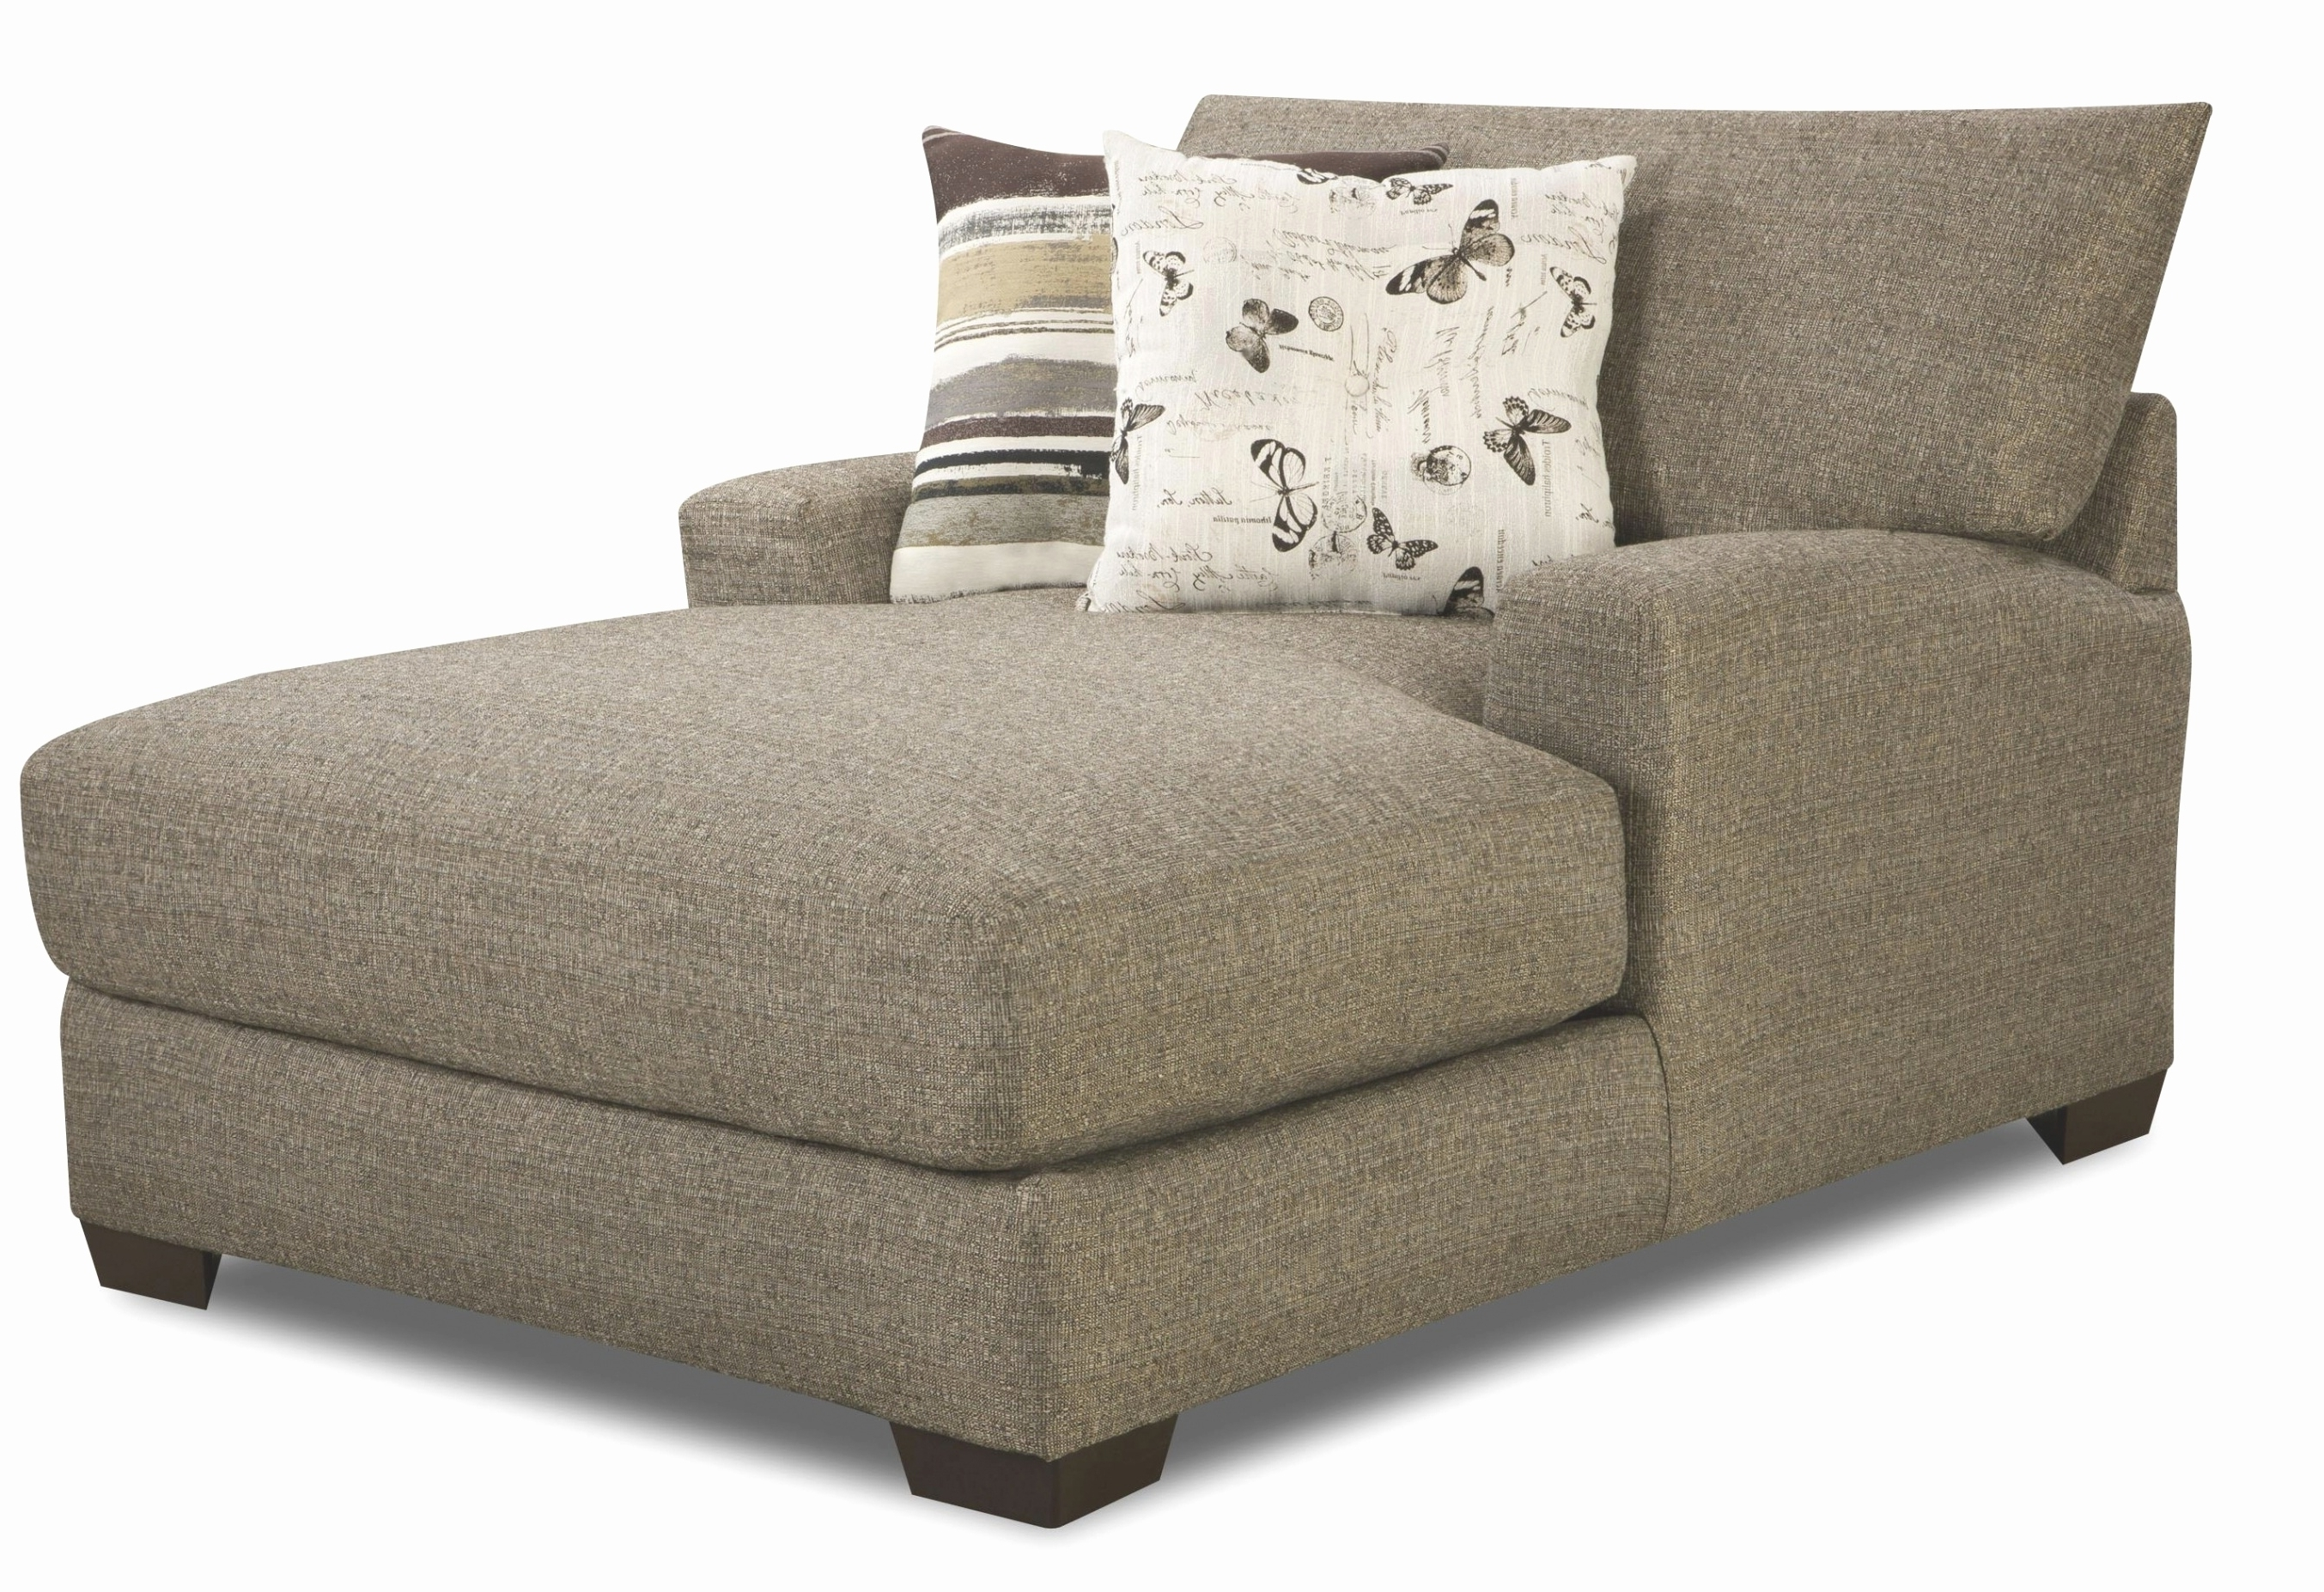 Latest Awesome Long Couch With Chaise 2018 – Couches Ideas In Wide Sofa Chairs (View 6 of 15)